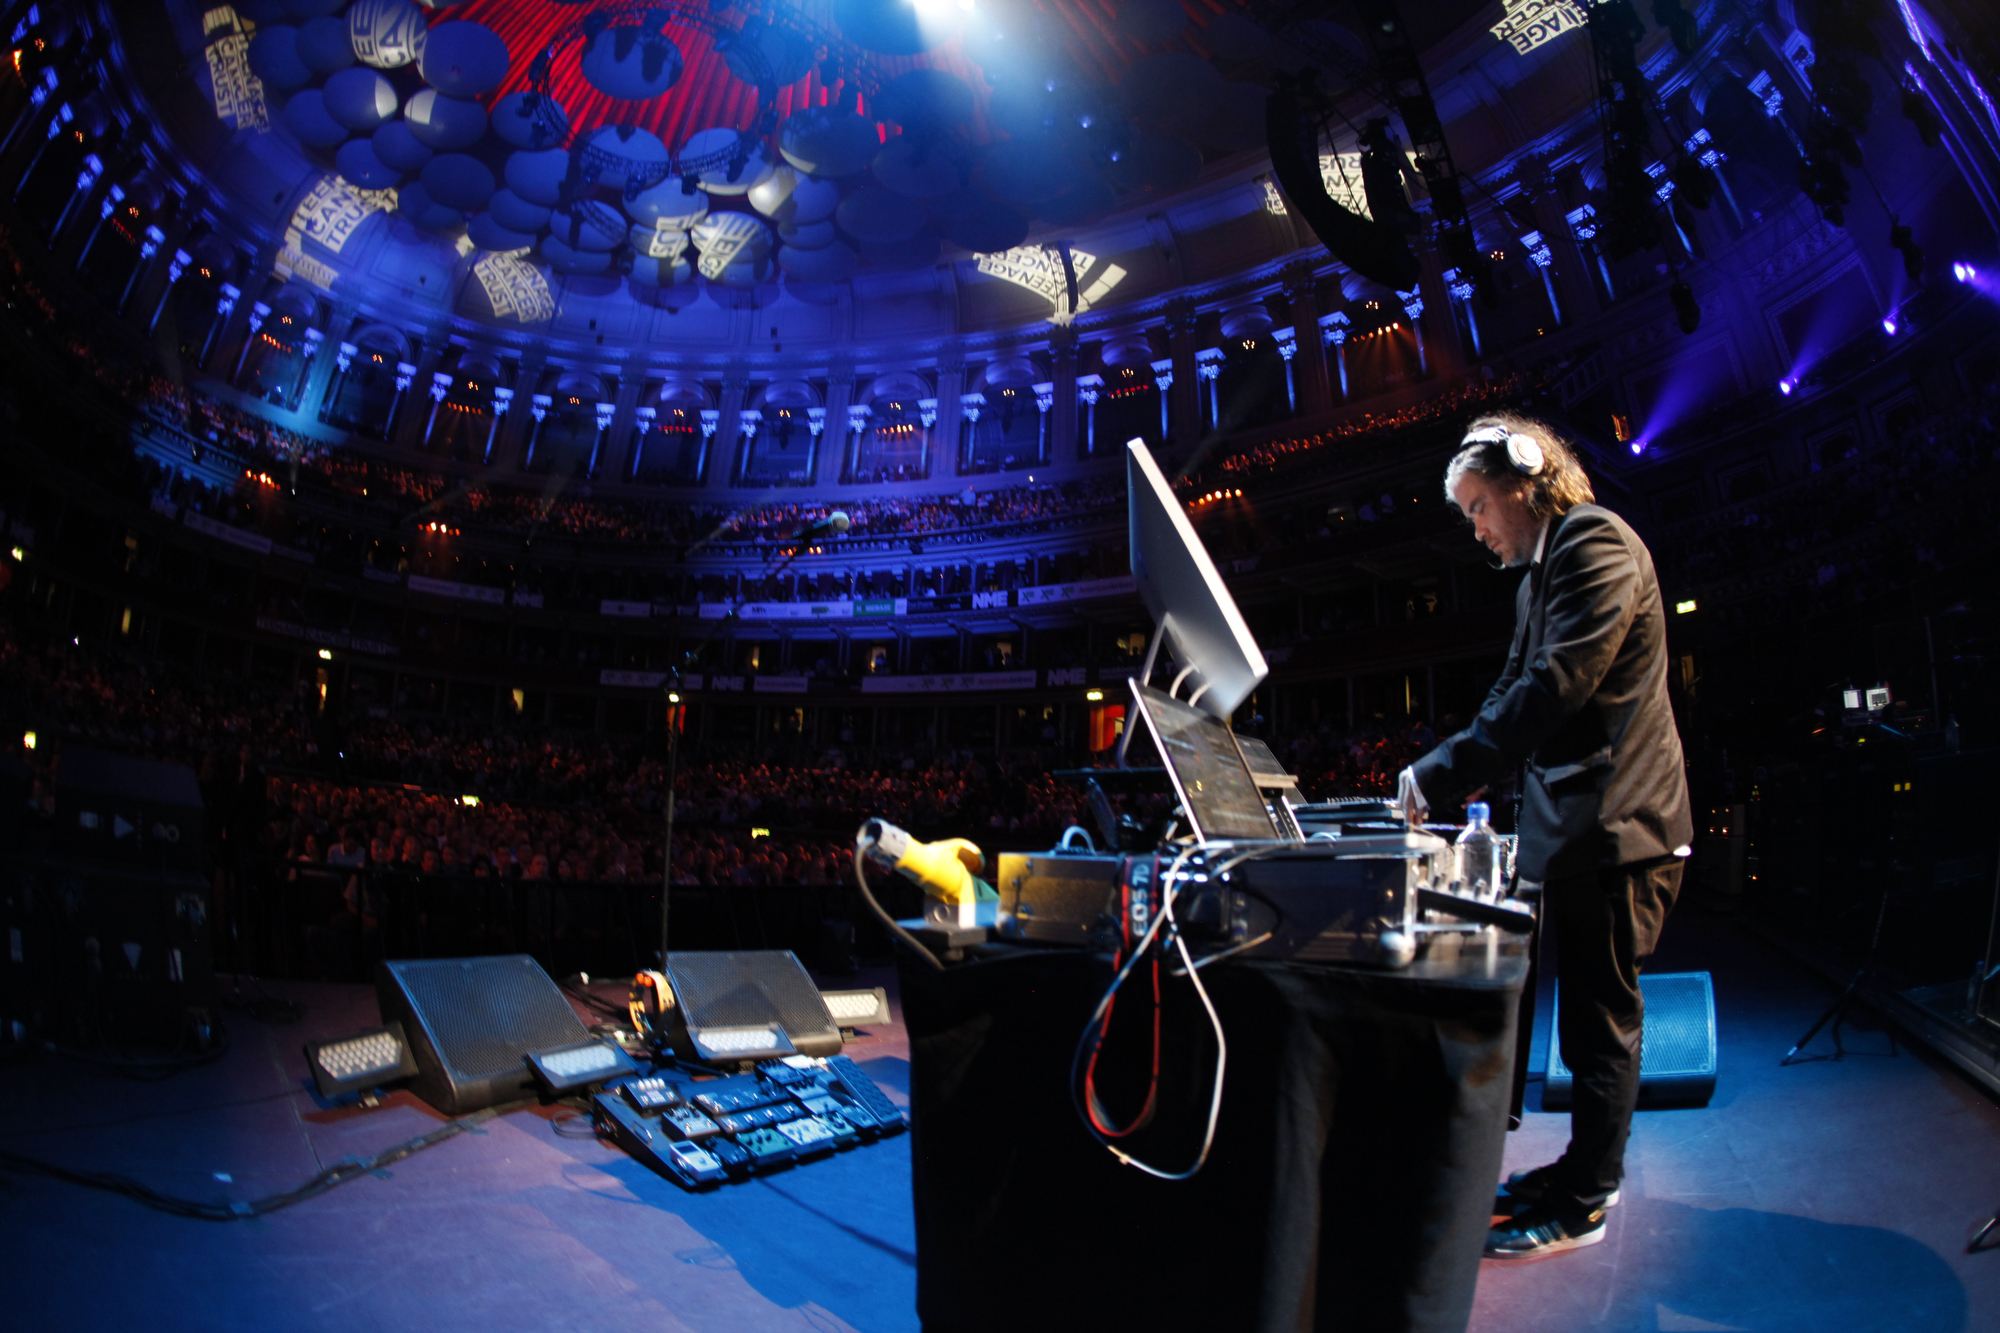 Chris Holmes DJing at Royal Albert Hall with Paul McCartney